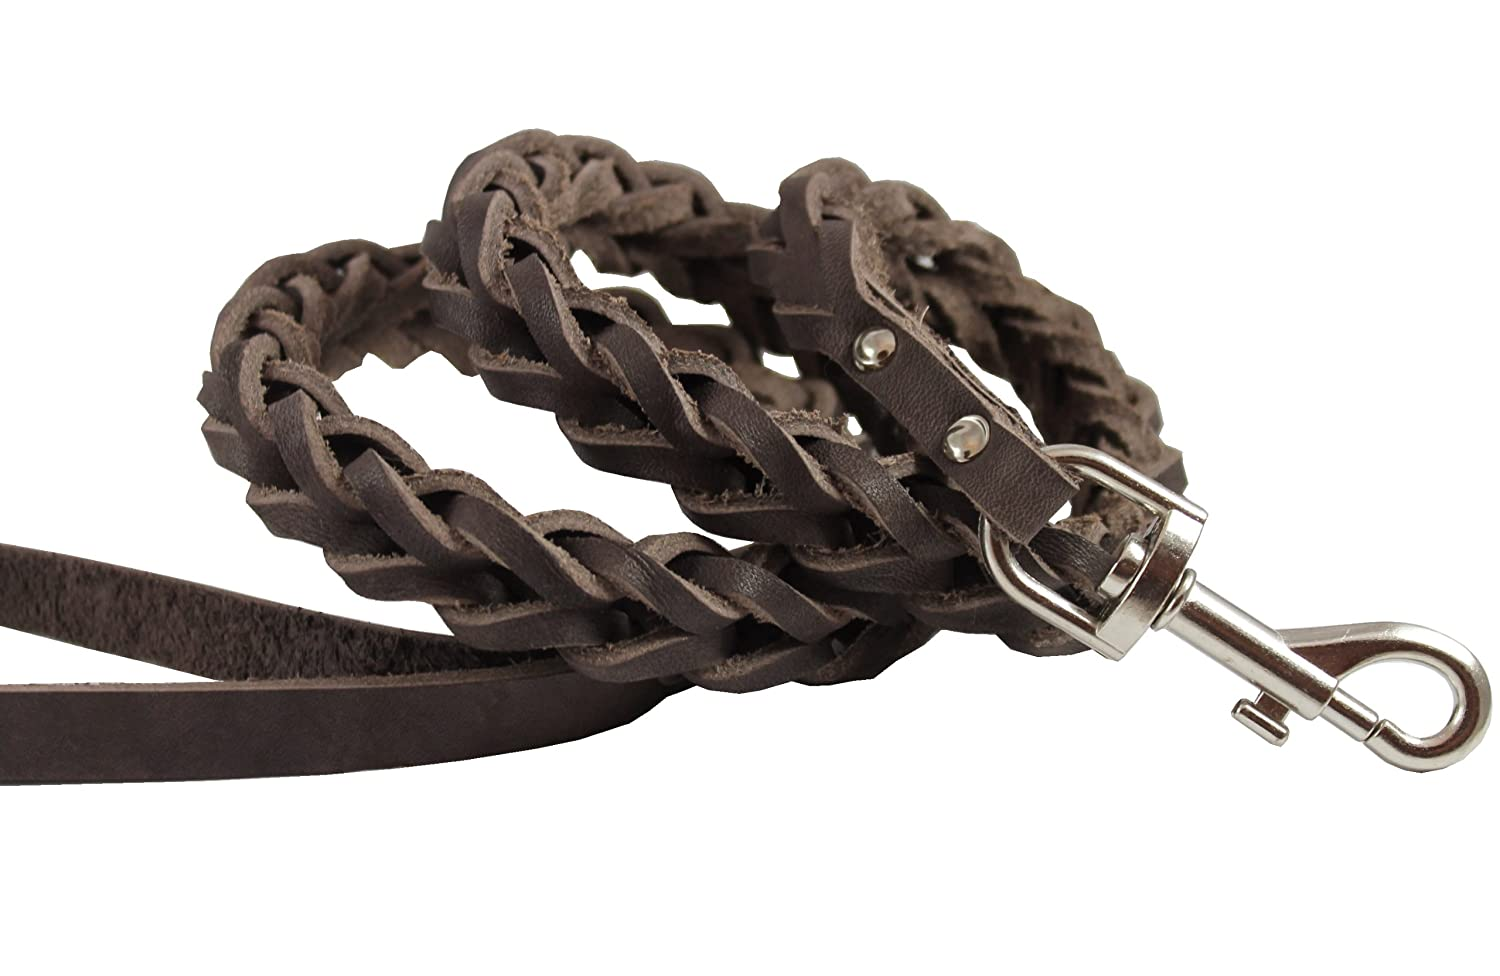 Brown Genuine Leather Braided Dog Leash 45  Long 4-Thong Square Braid for Medium to Large Breeds